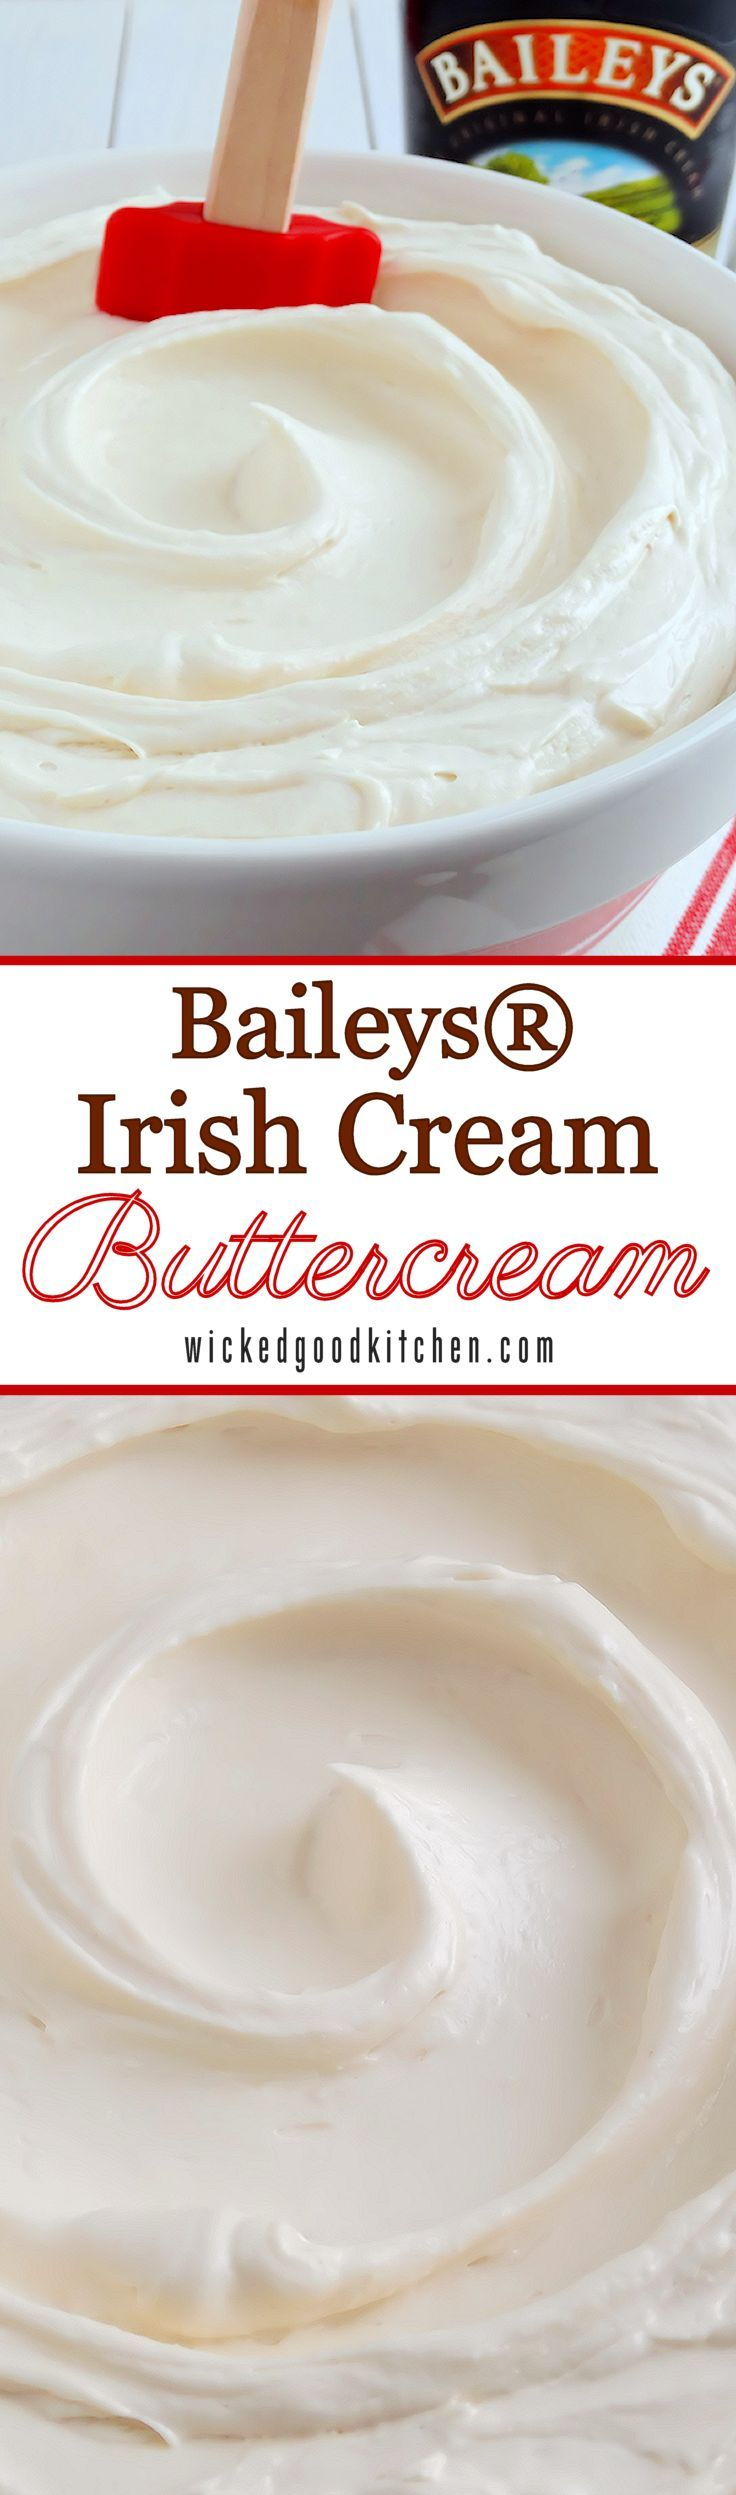 Creamy, silky and incredibly light, infused with plenty of Baileys® Irish Cream imparting pleasing caramel notes, melts on the tongue and is not too sweet, this is the perfect frosting for cakes and cupcakes! Recipe includes variation for Baileys® Coffee Buttercream. You will LOVE this one! | cake dessert filling